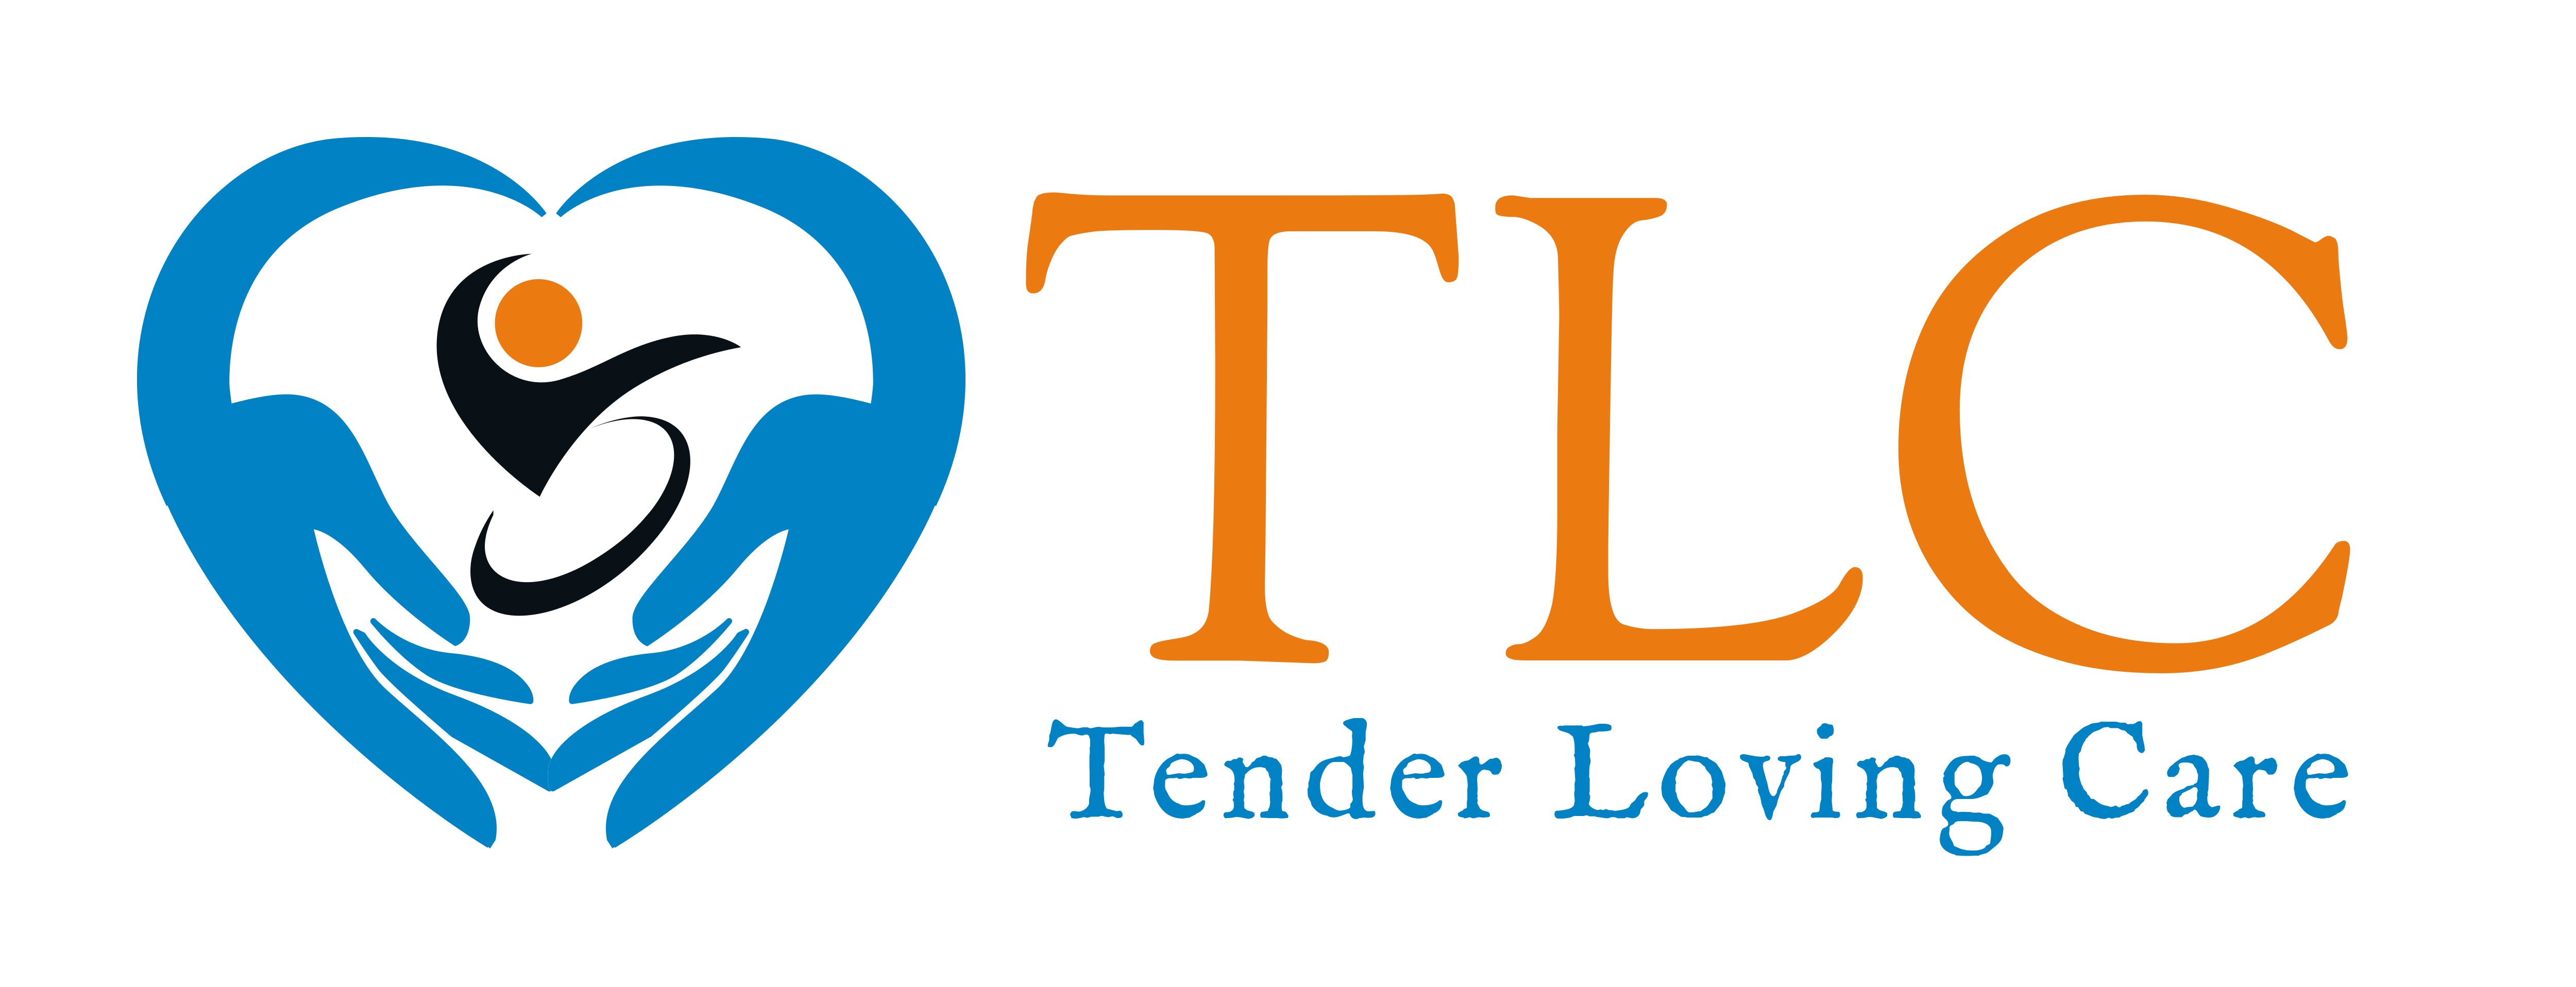 Tender Loving Care Disability Services